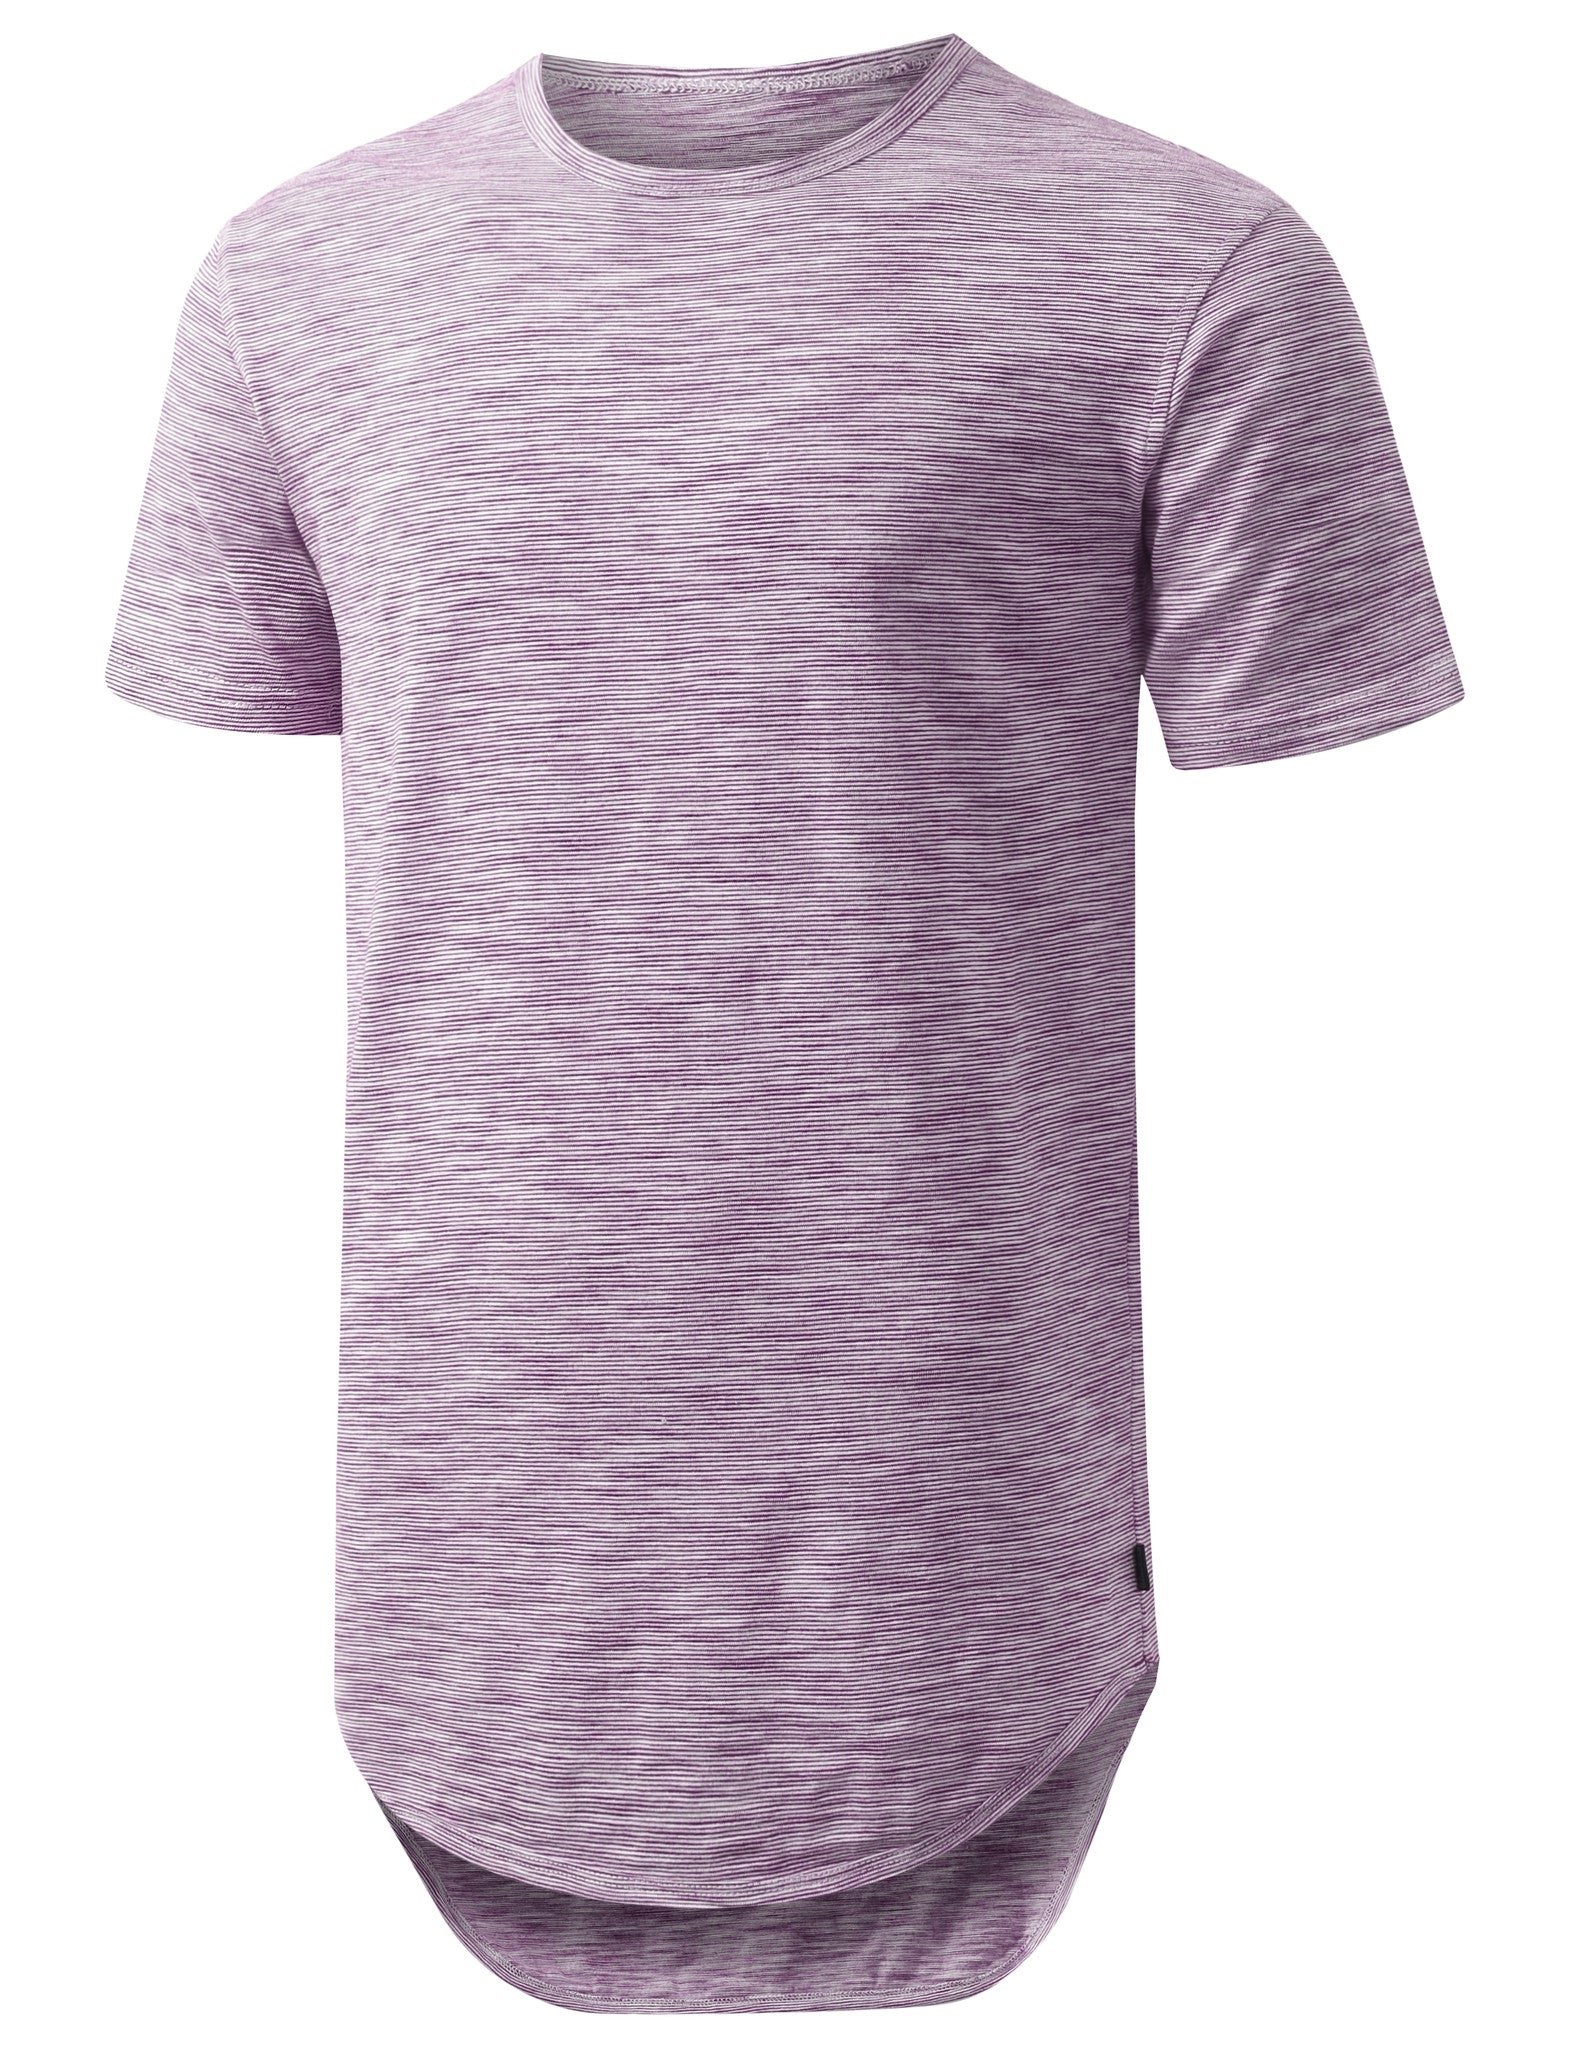 PURPLE 2 Tone Weaved Longline Tshirt - URBANCREWS